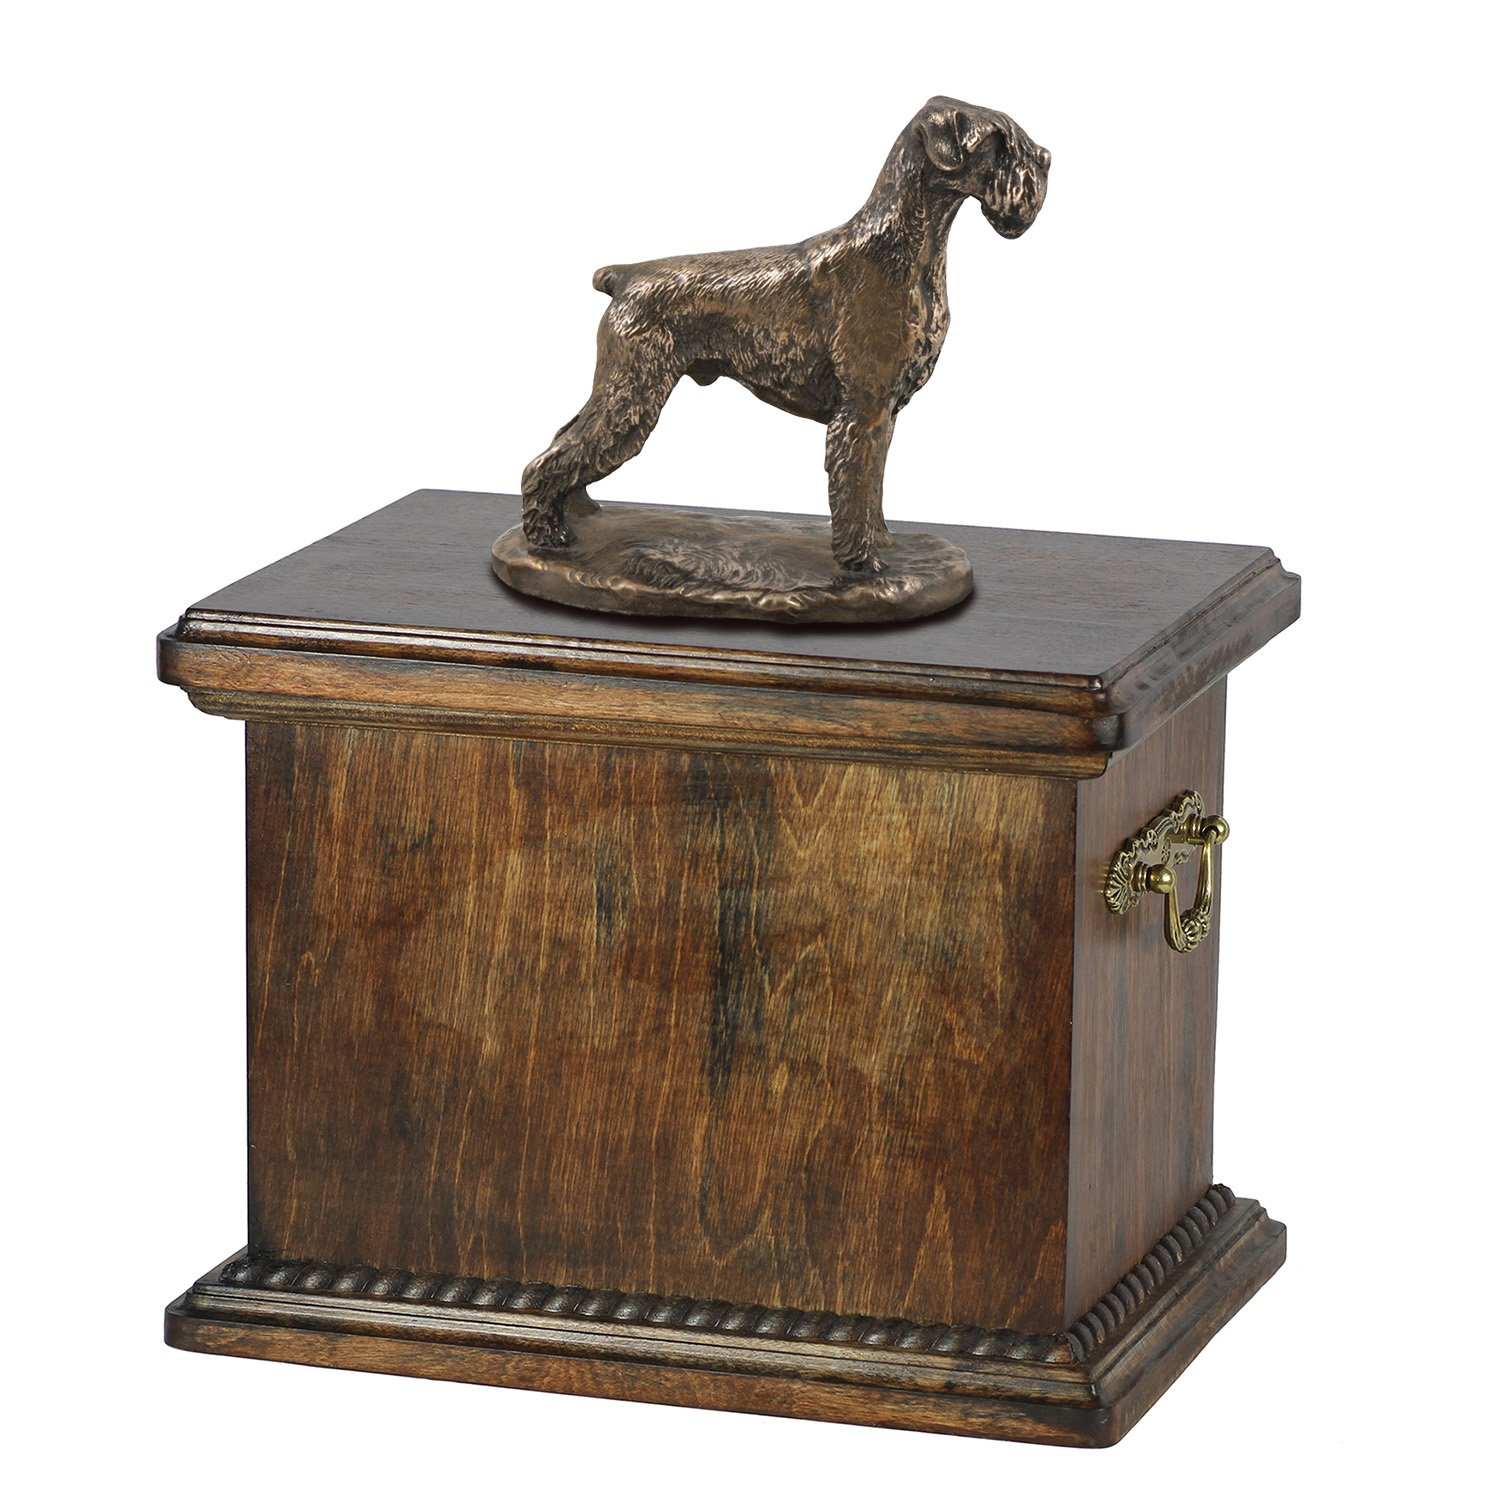 Schnauzer (uncropped), memorial, urn for dog's ashes, with dog statue, ArtDog